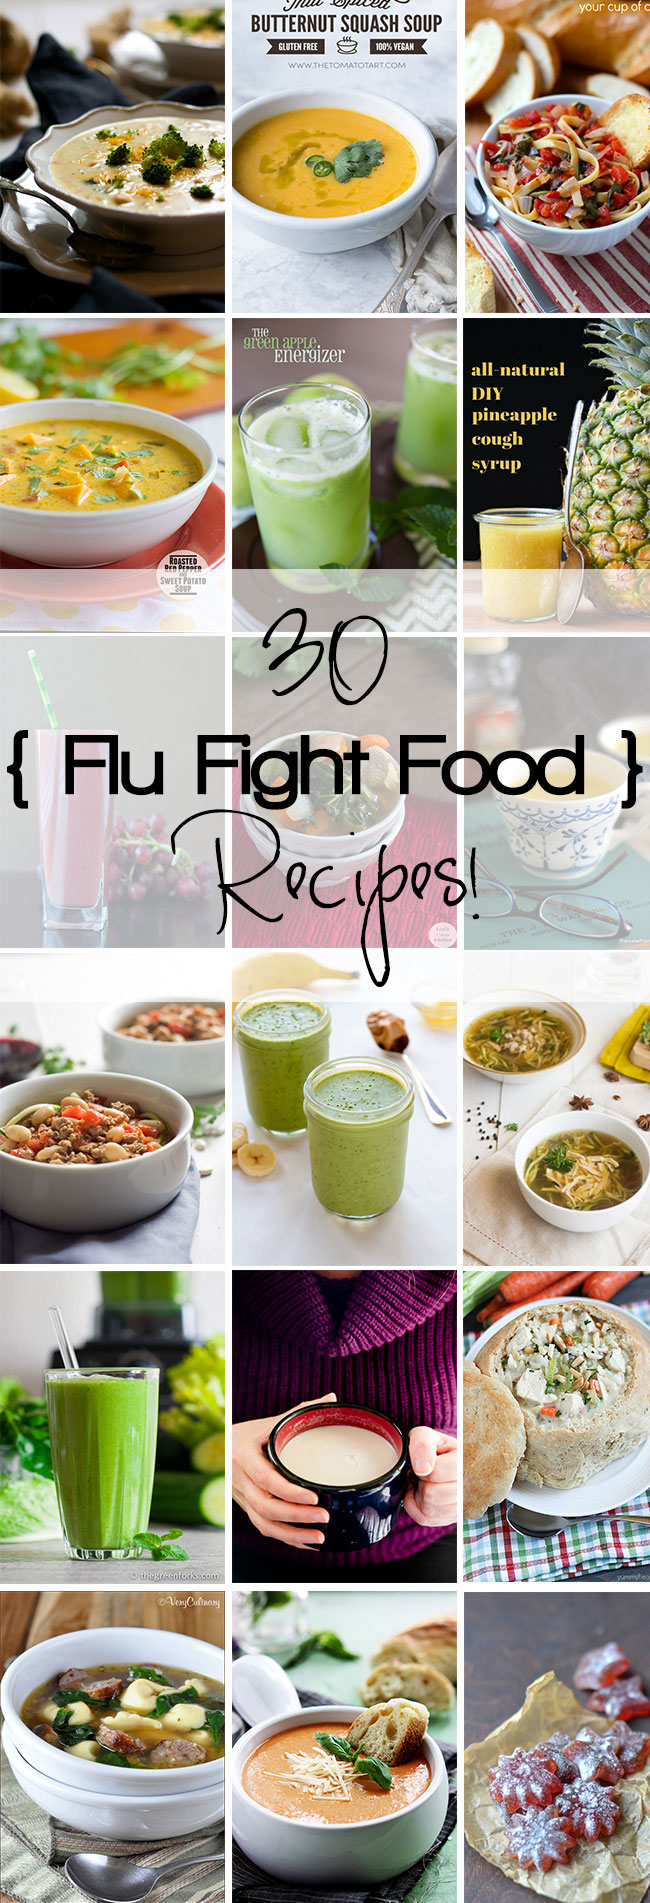 Cold Fighting Foods Recipes